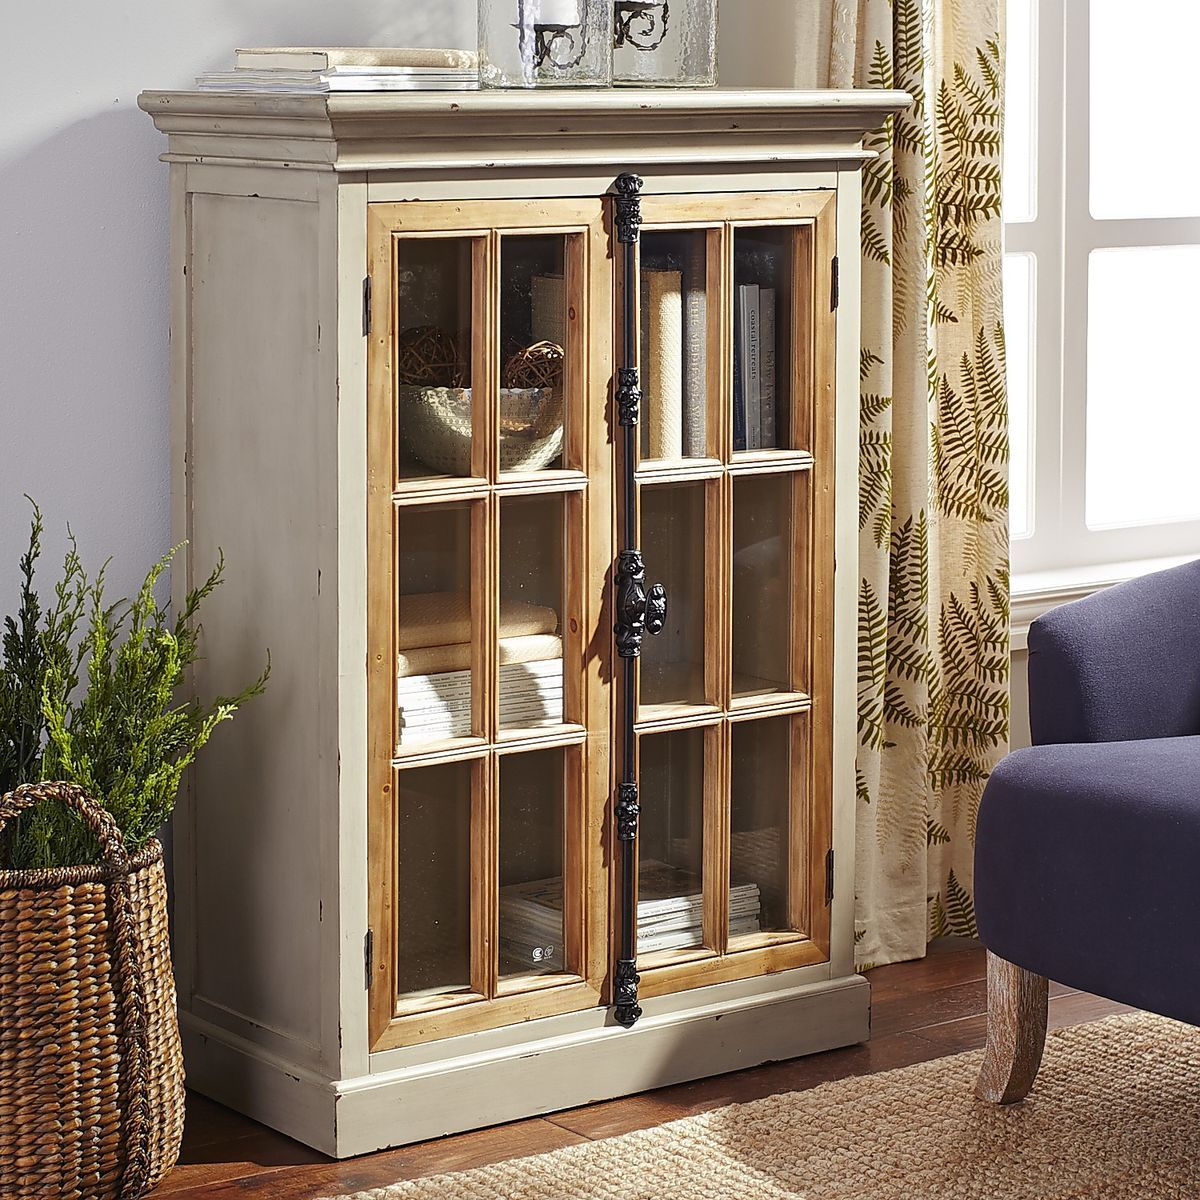 Cremone Low Cabinet - Linen Gray | Pier 1 Imports. The hardware is ...